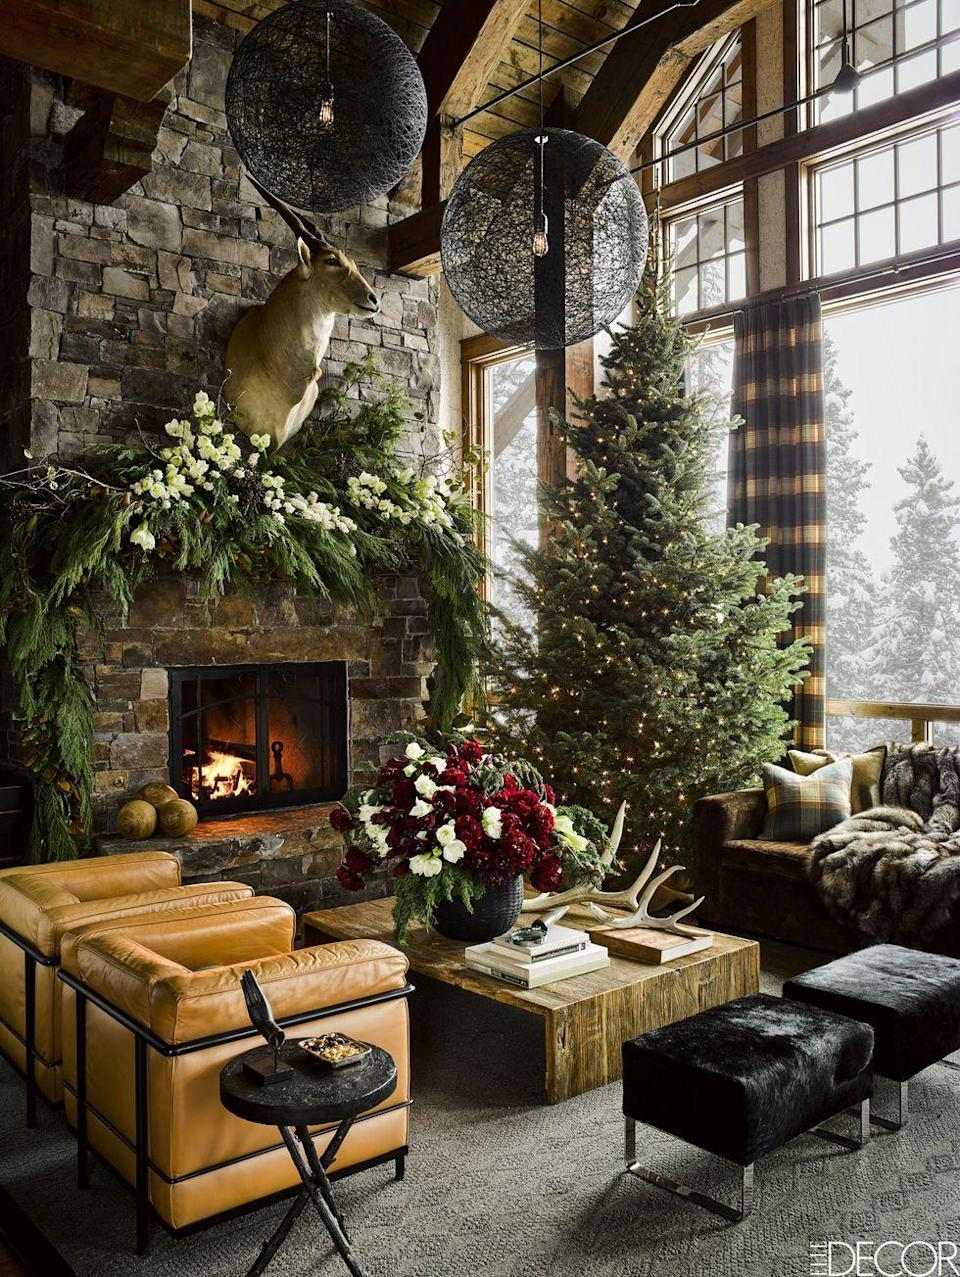 <p>Embrace your tree's arboreal beauty with ultra-minimalist decor that lets the pine speak for itself. This sky-high tree is decorated with simple twinkling lights for a subdued spirit without all the glam.</p>